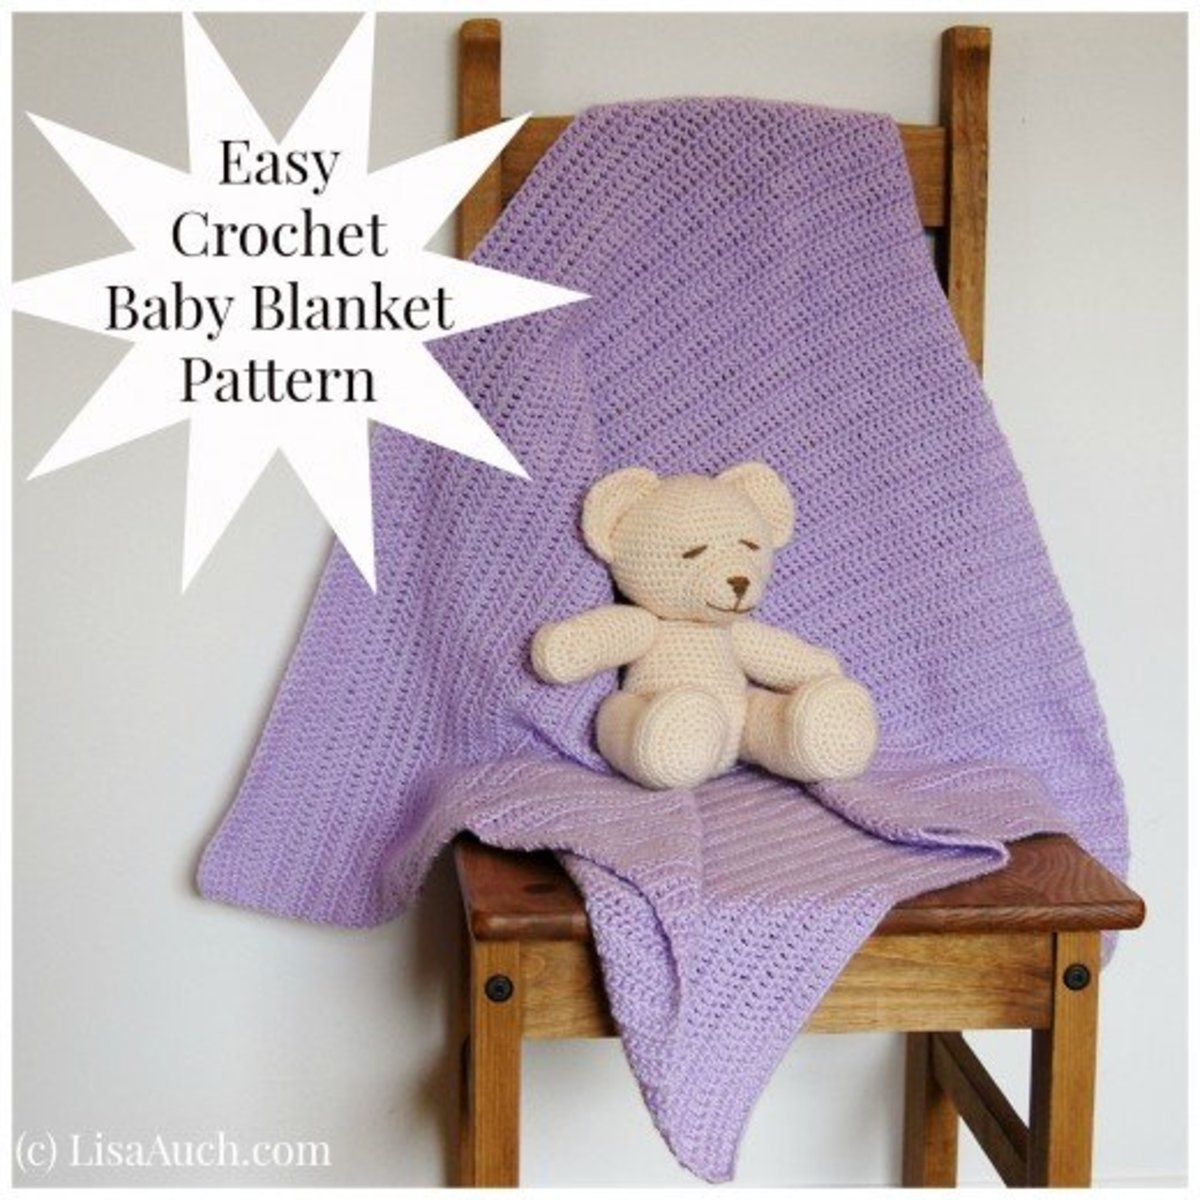 How To Crochet An Easy Baby Blanket Ideal For Beginners Free Pattern And Tutorial Feltmagnet Crafts